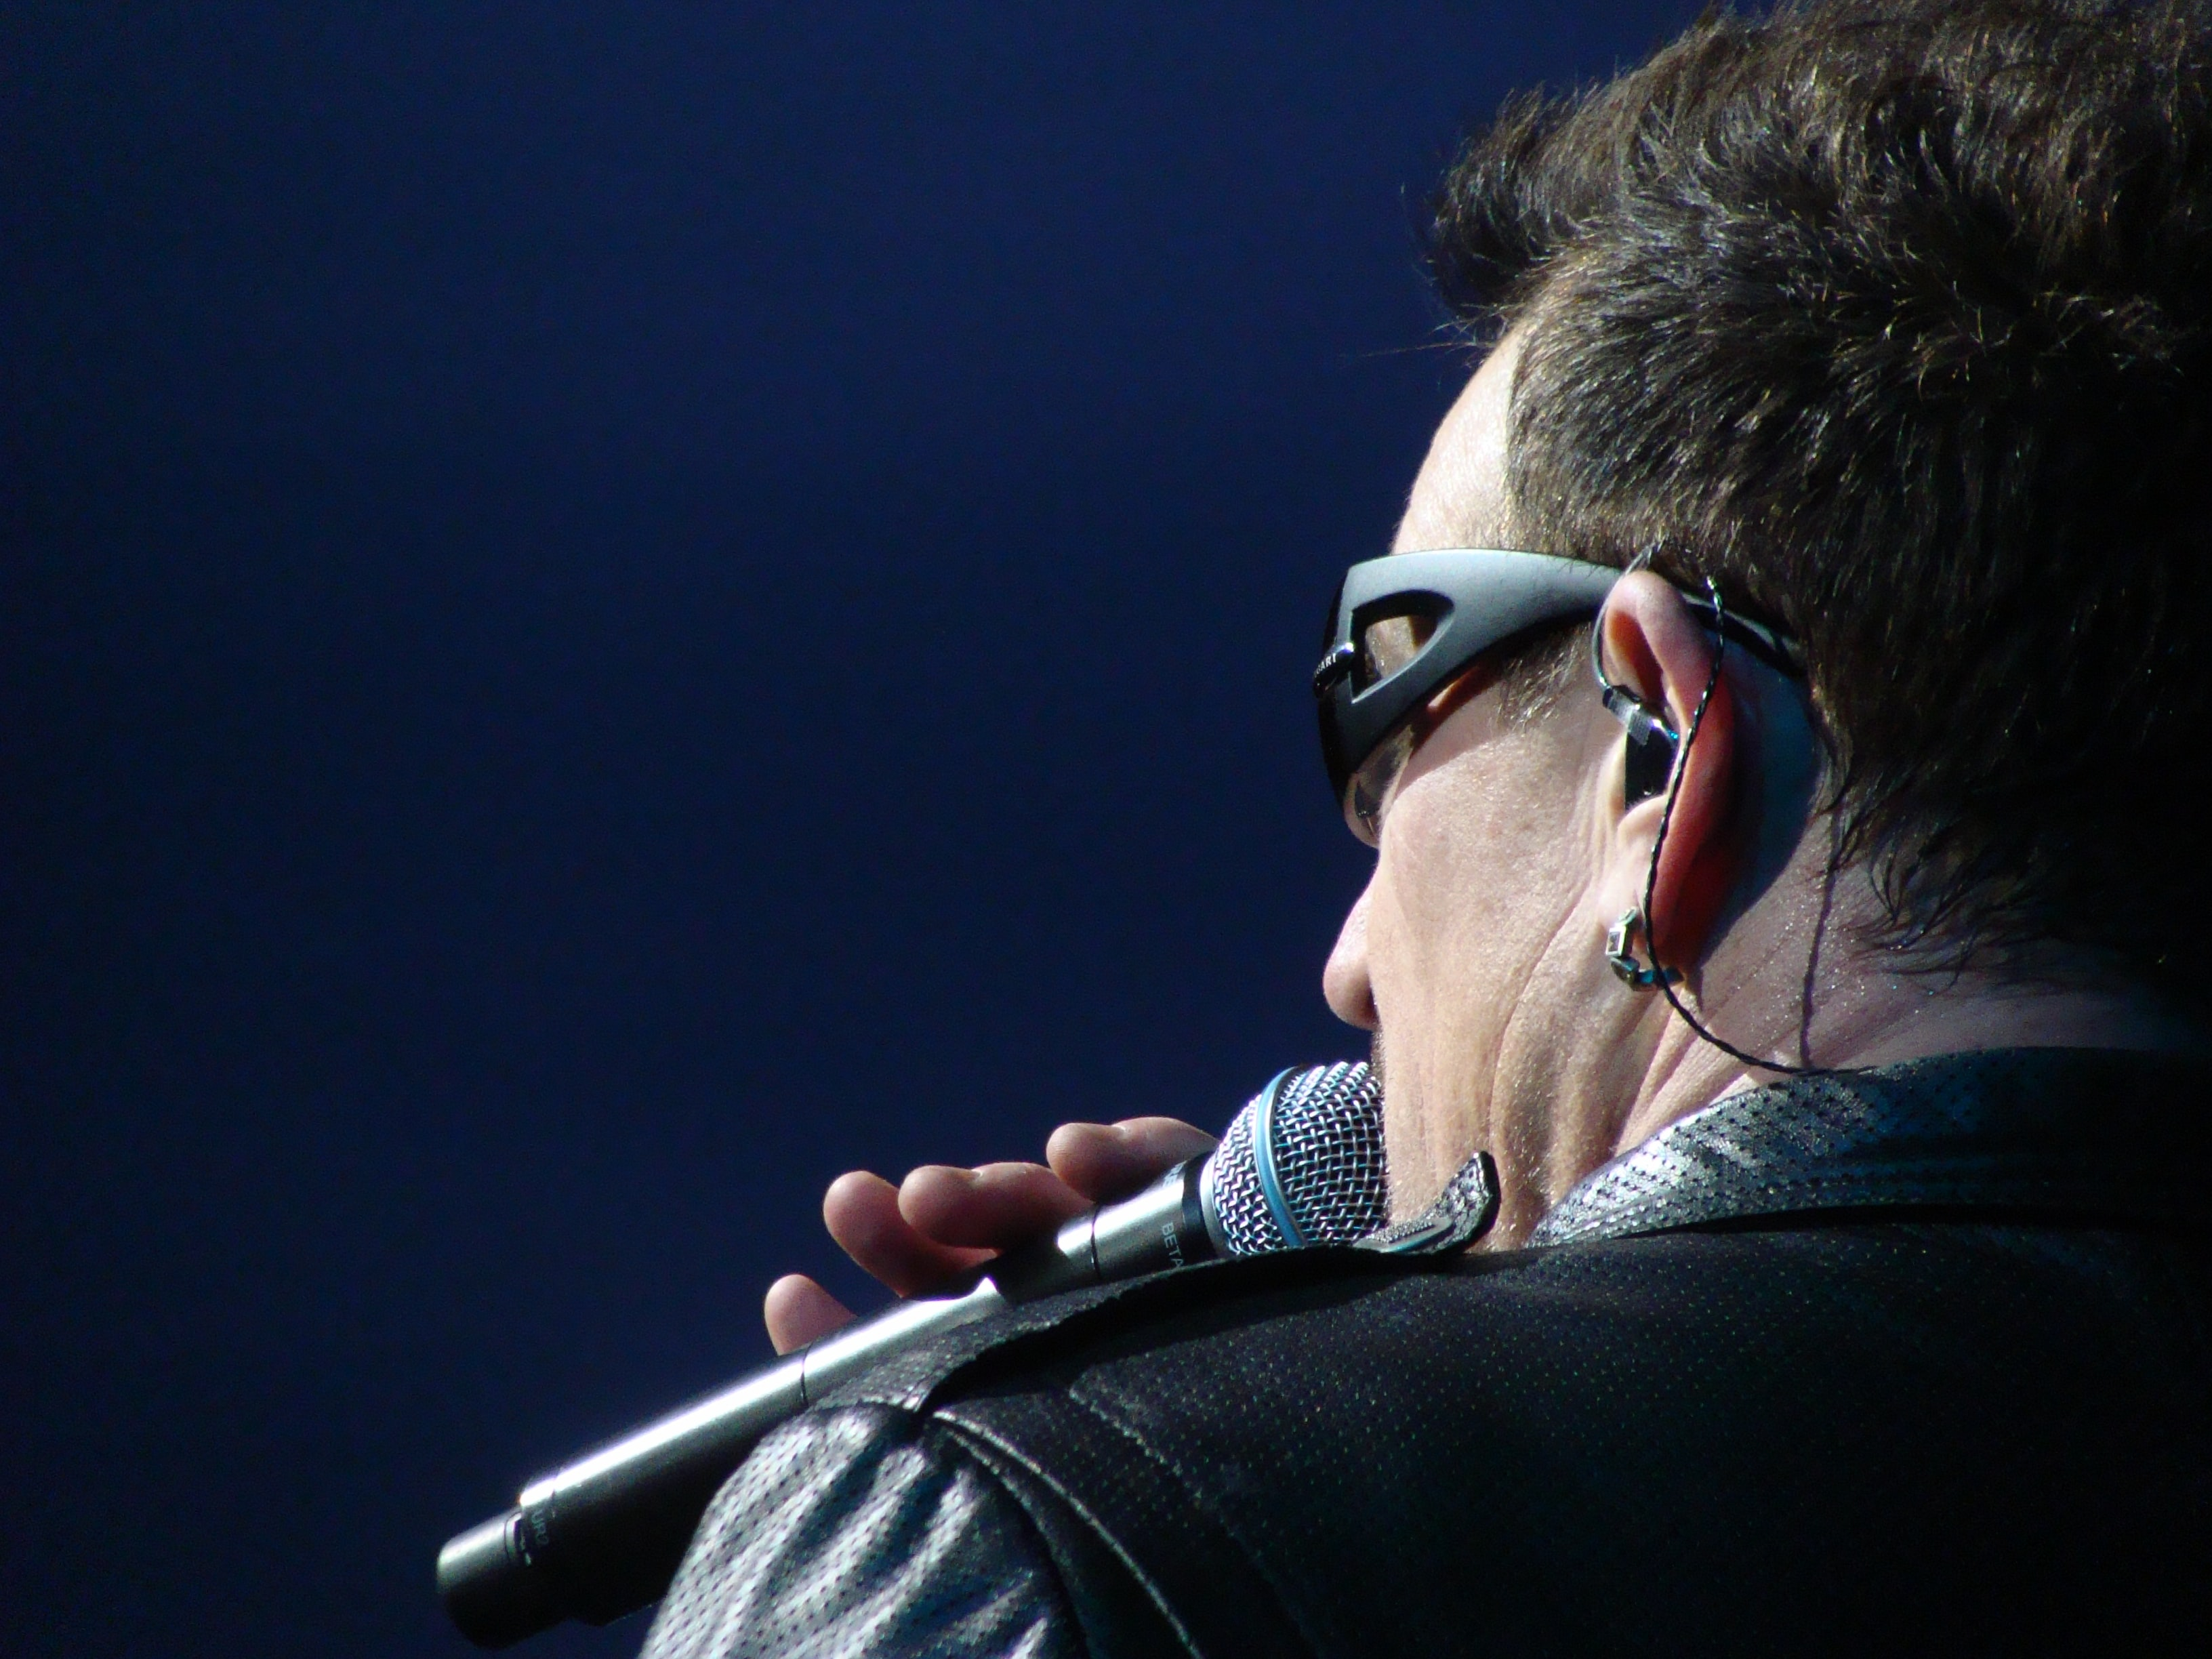 Singer Bono hold microphone and wears glasses and earpiece during a concert